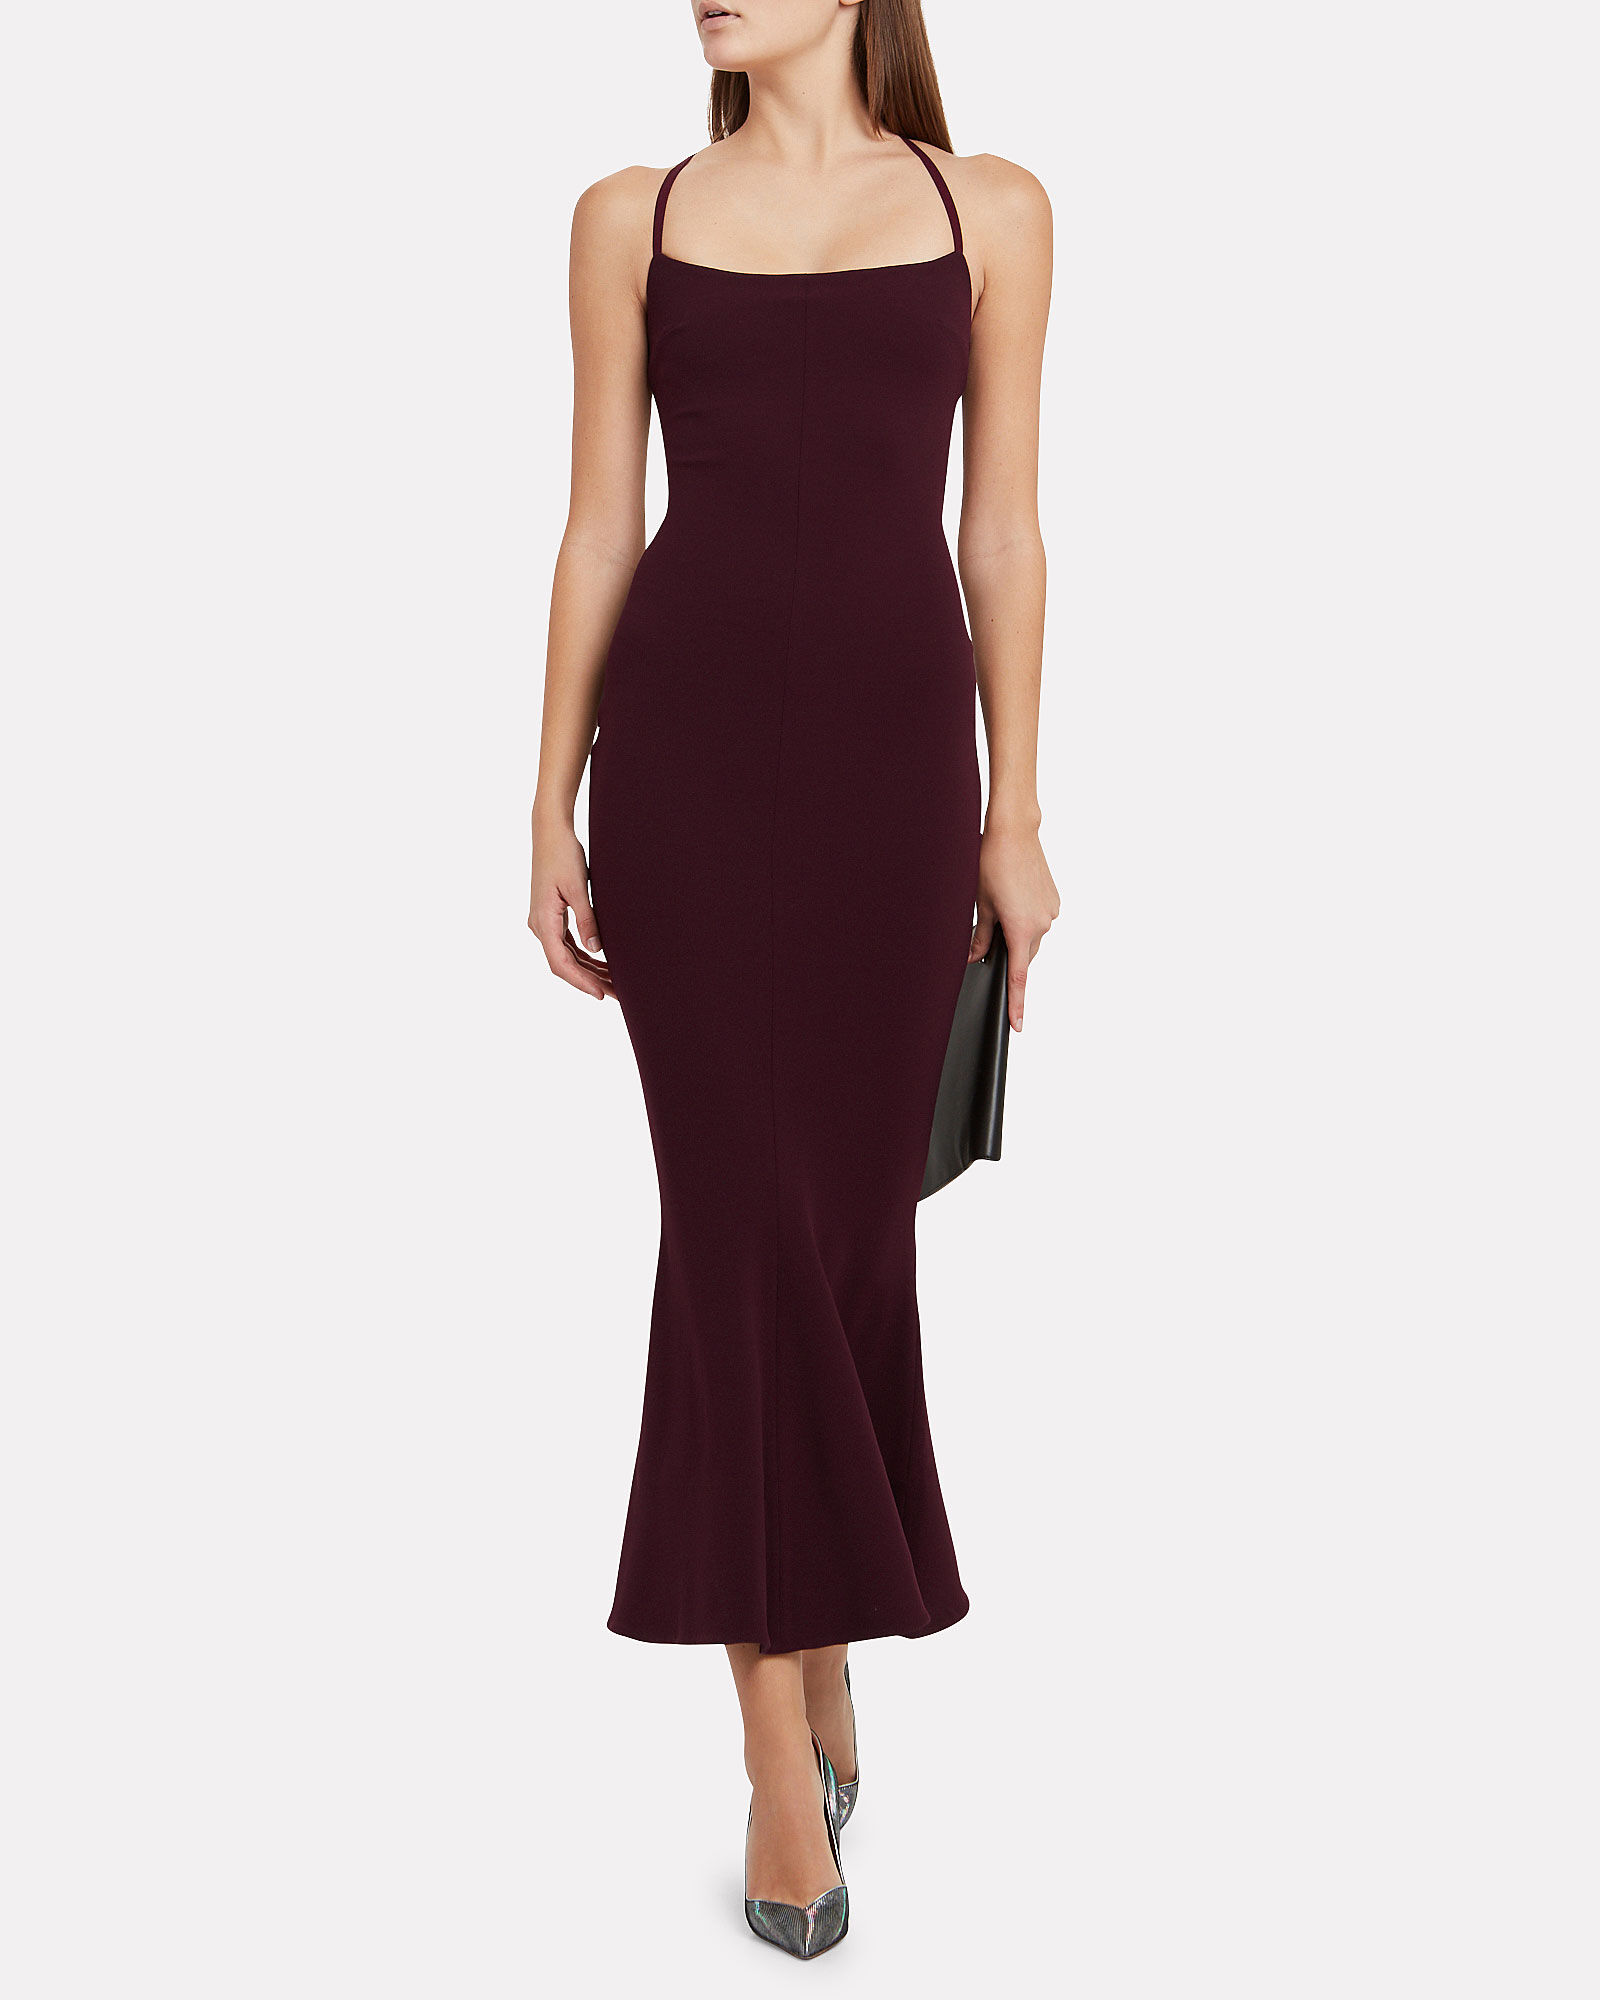 Verla Crepe Flared Dress, PURPLE, hi-res